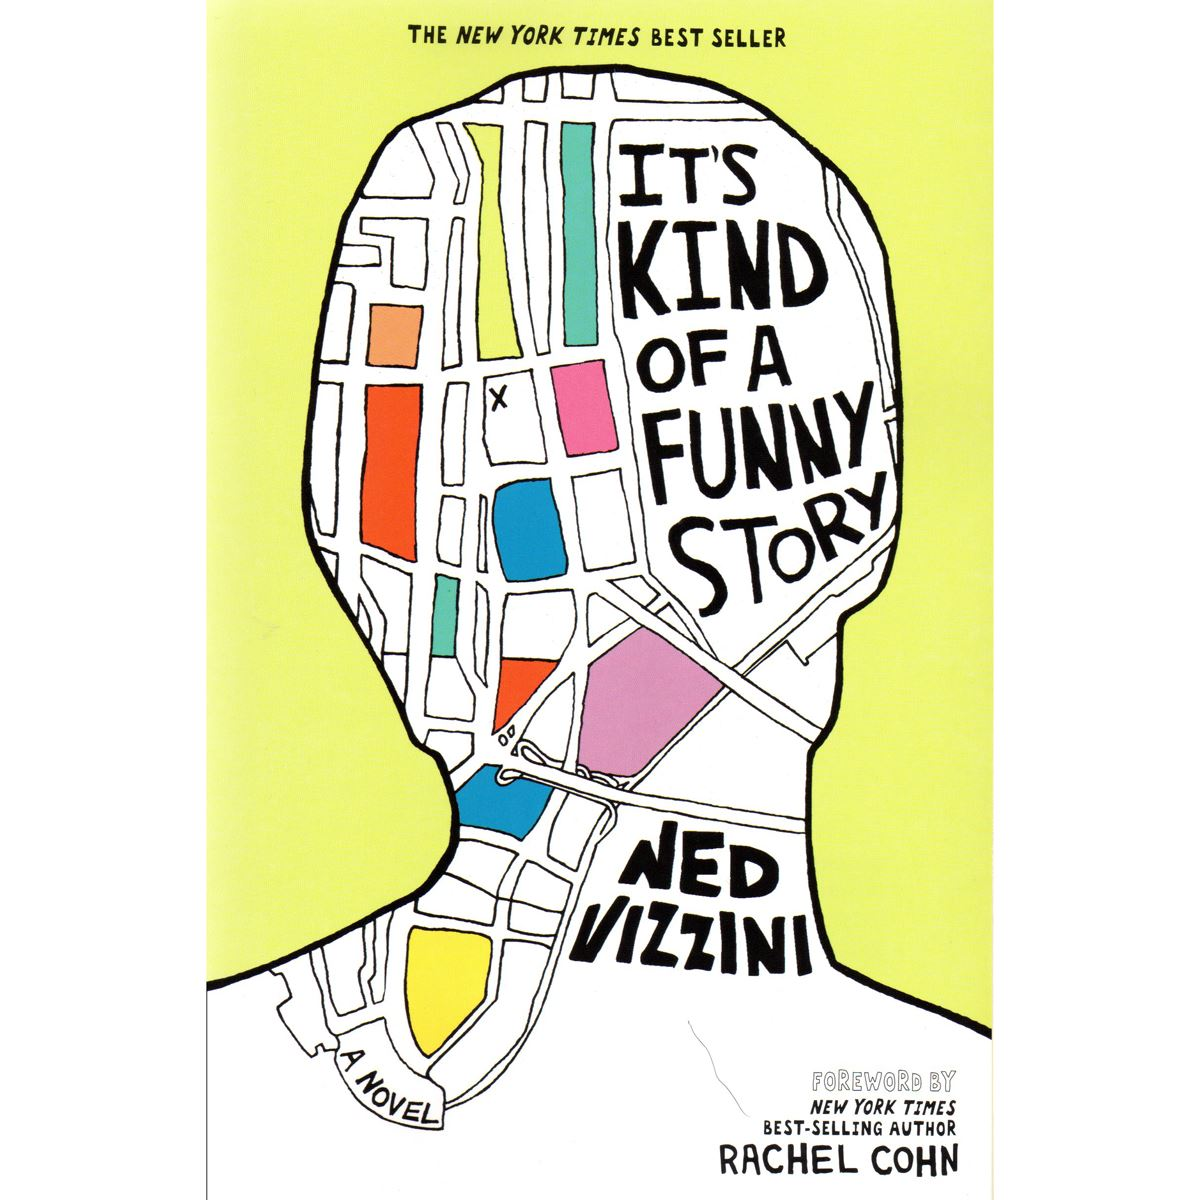 Its kind of a funny story Libro - Sanborns